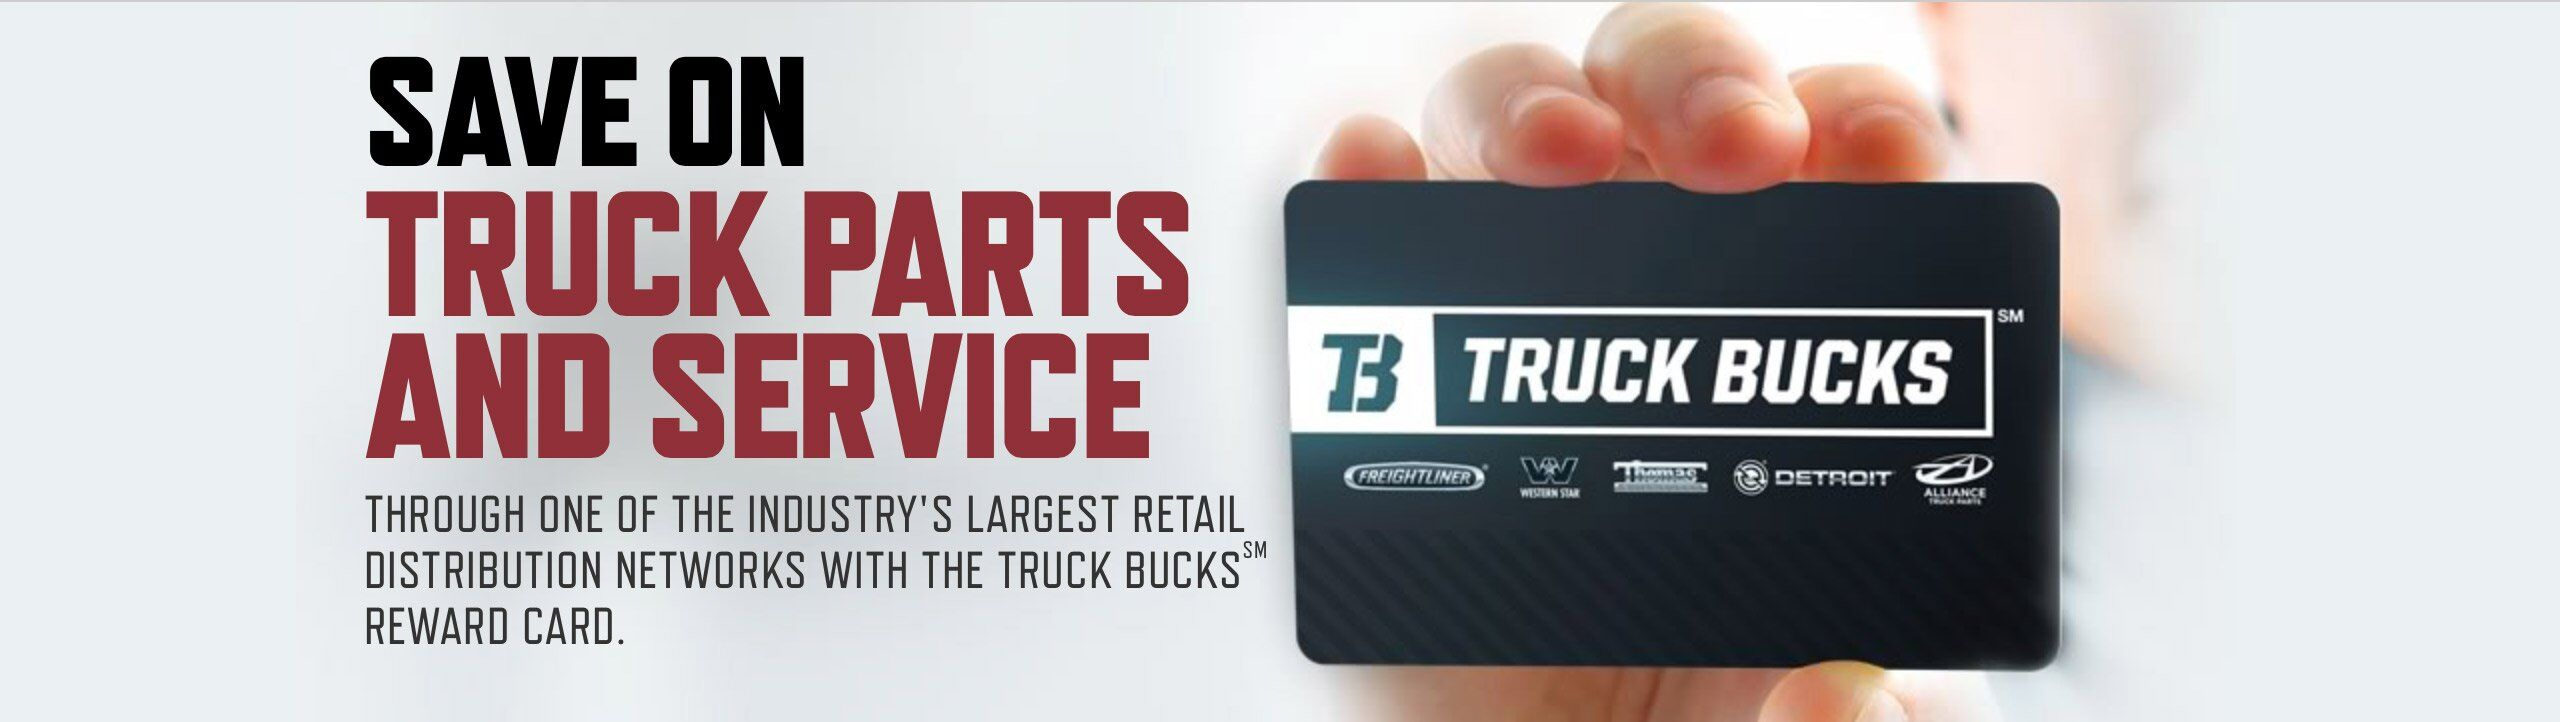 Truck Bucks at New West Truck Centres